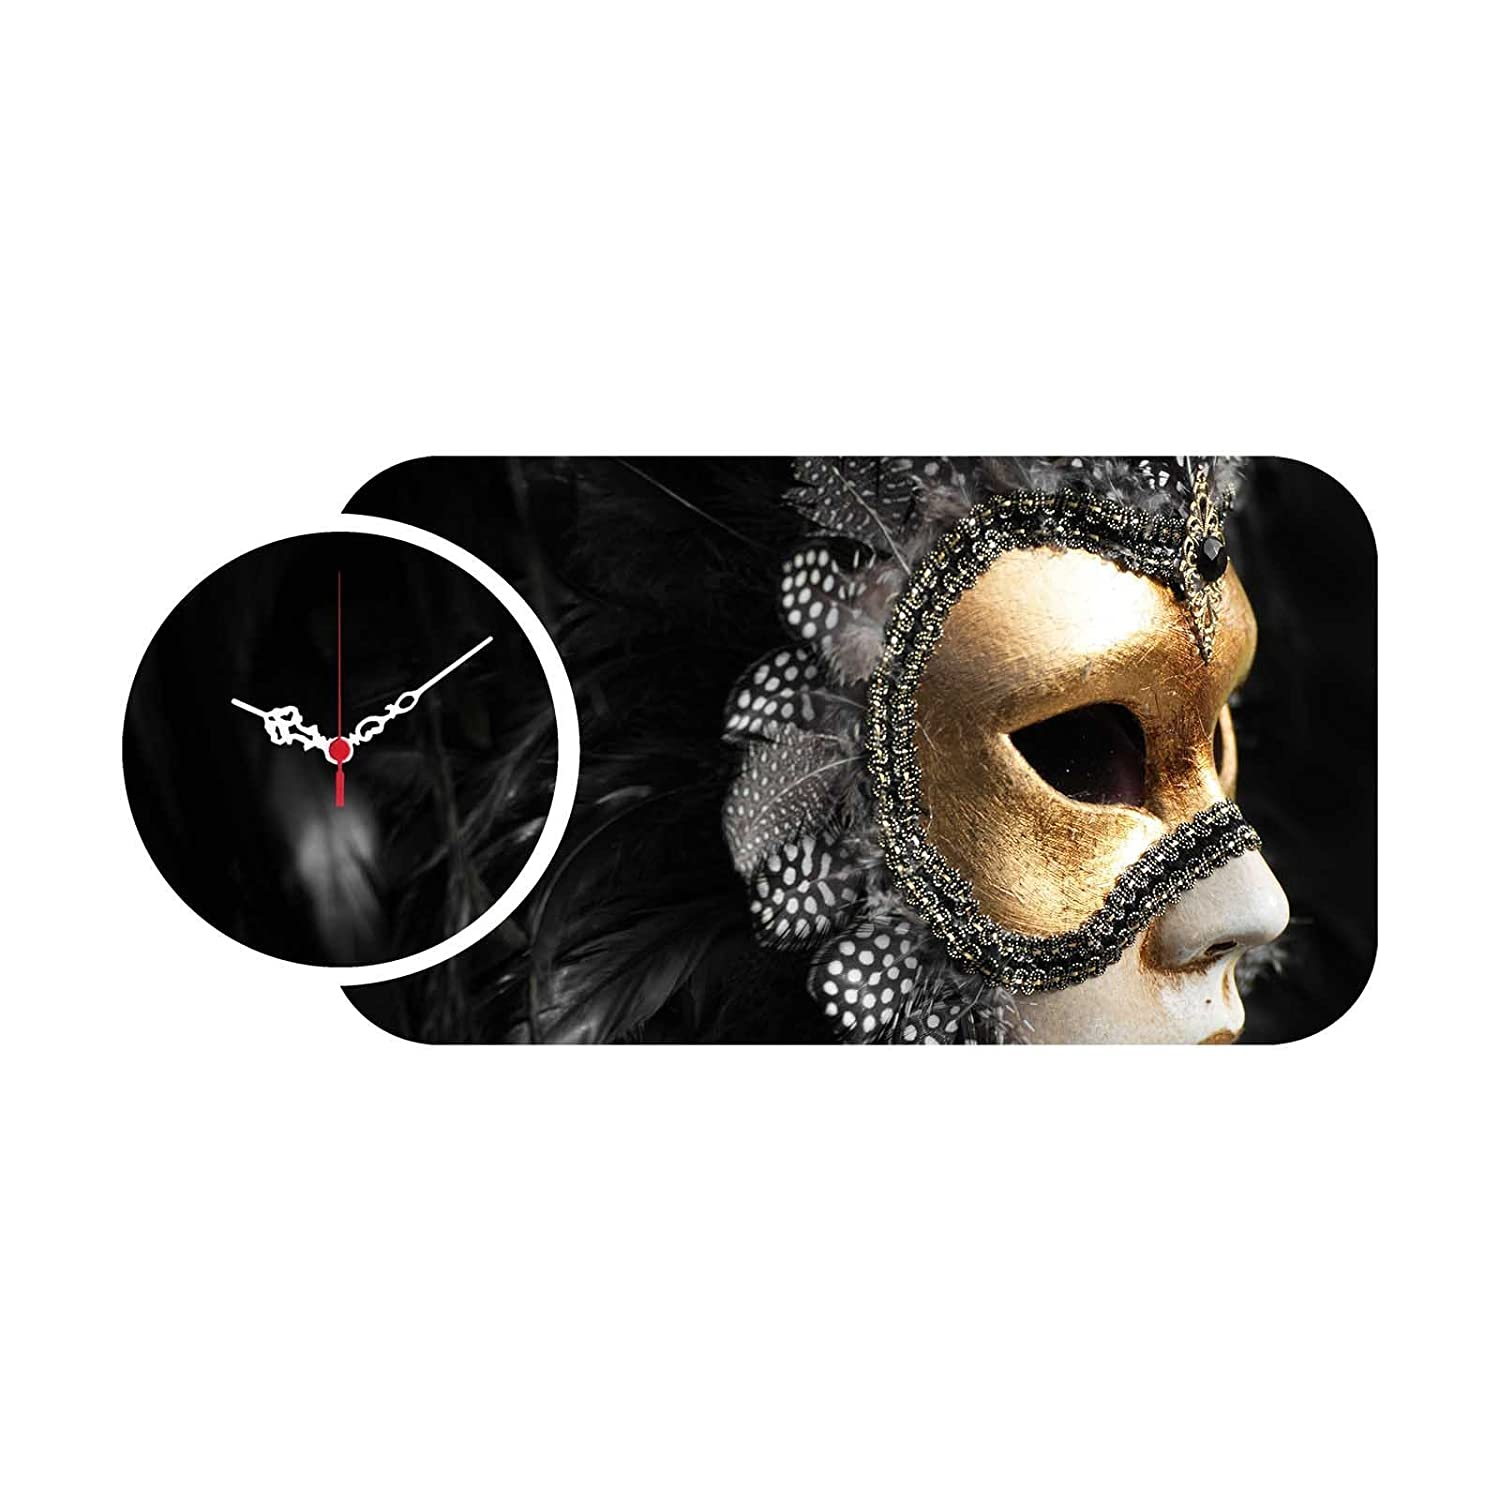 Black Swan Size 27 x 13 Childrens Room Size Dorm Ready to Hang - Wall Art Hanging for Living Room LaModaHome MDF Real Running Clock Mask with Feathers 27 x 13 Bedroom - Wall Art Hanging for Living Room Children/'s Room 238HMA5146